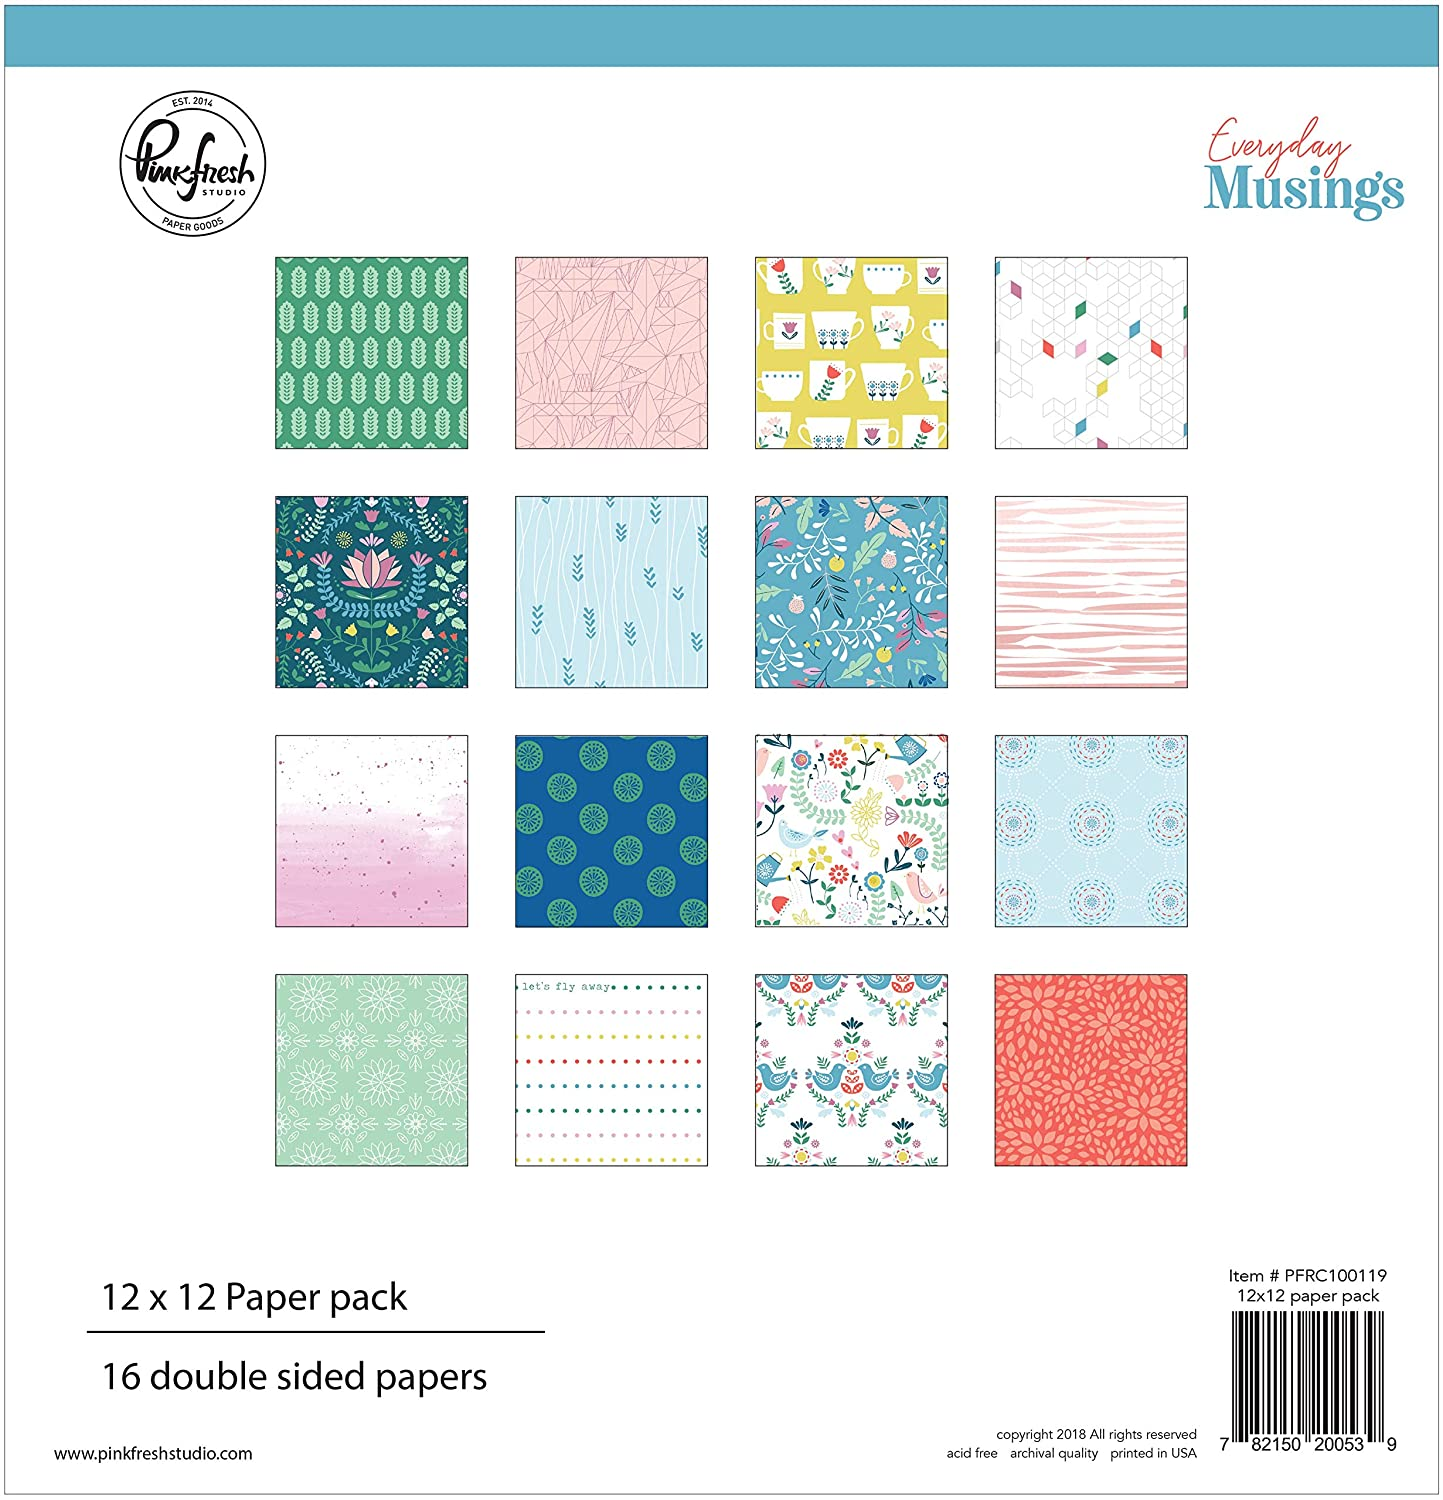 8 Designs//2 Pinkfresh Studio PFEM119 Double-Sided Paper Pack 12X12 16//Pkg-Everyday Musings